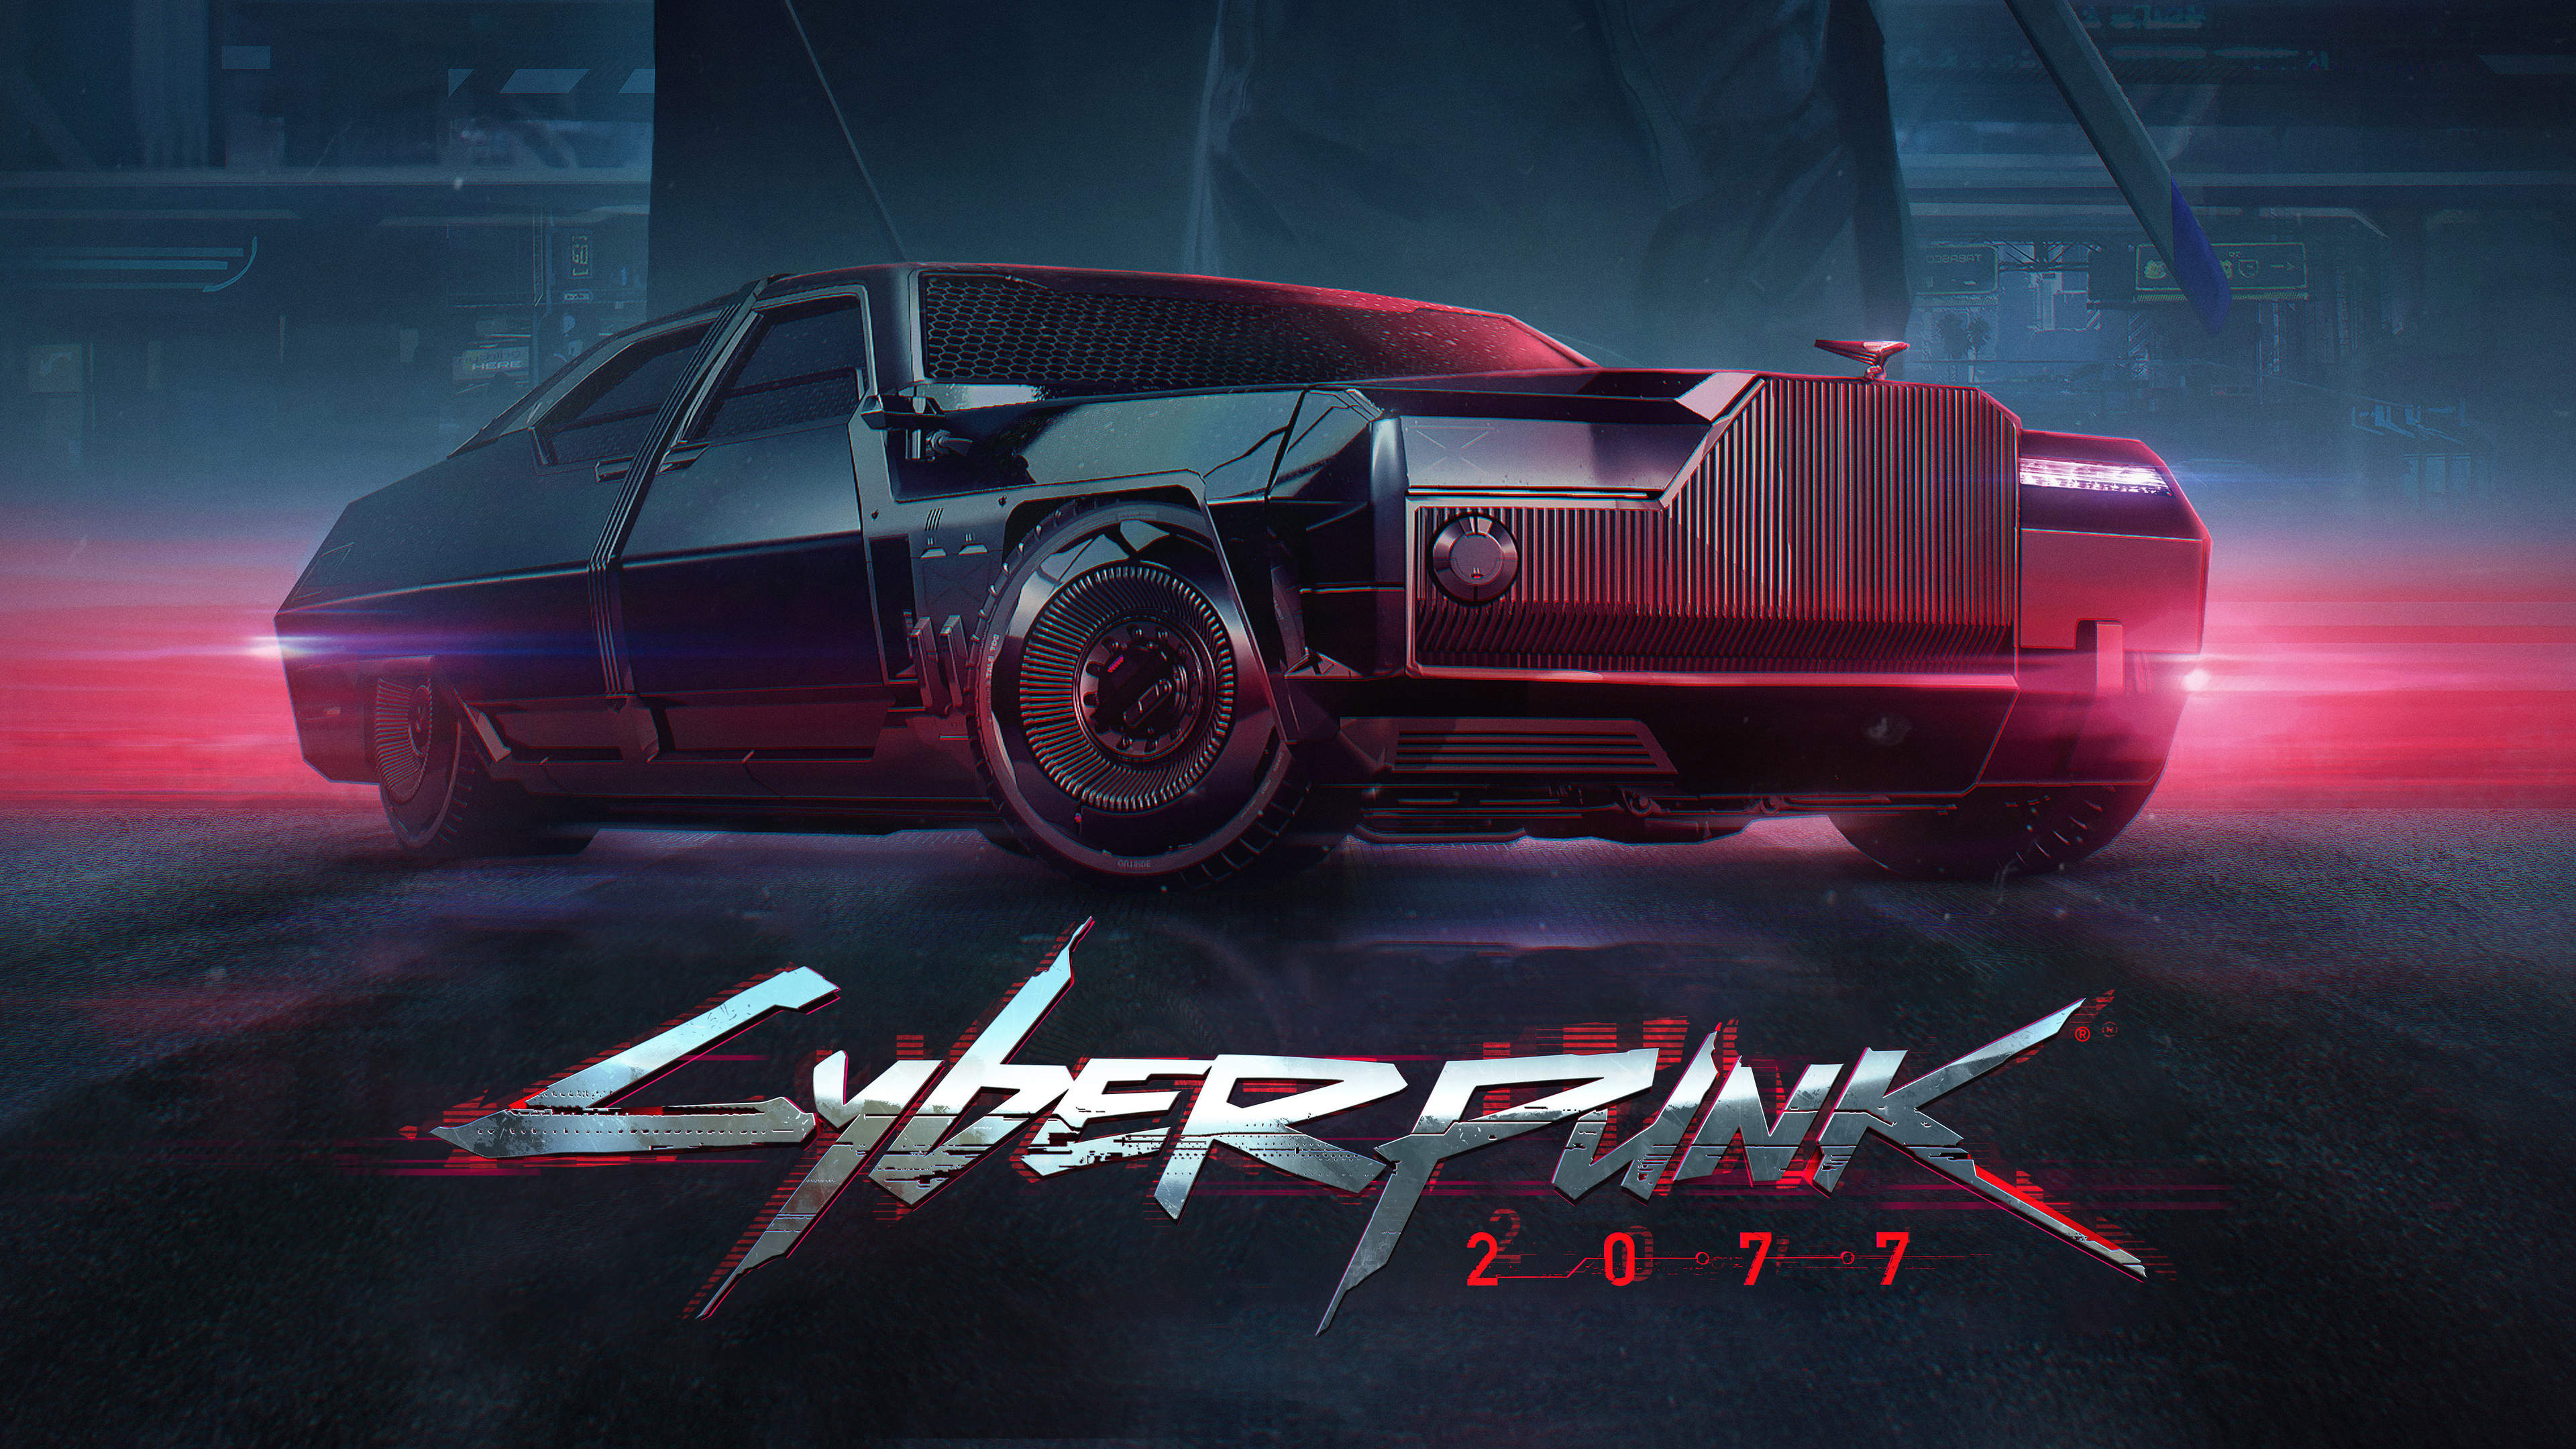 Wallpaper 4k Cyberpunk 2077 Poster 2019 Games Wallpapers 4k Wallpapers Cyberpunk 2077 Wallpapers Games Wallpapers Hd Wallpapers Pc Games Wallpapers Poster Wallpapers Ps Games Wallpapers Xbox Games Wallpapers